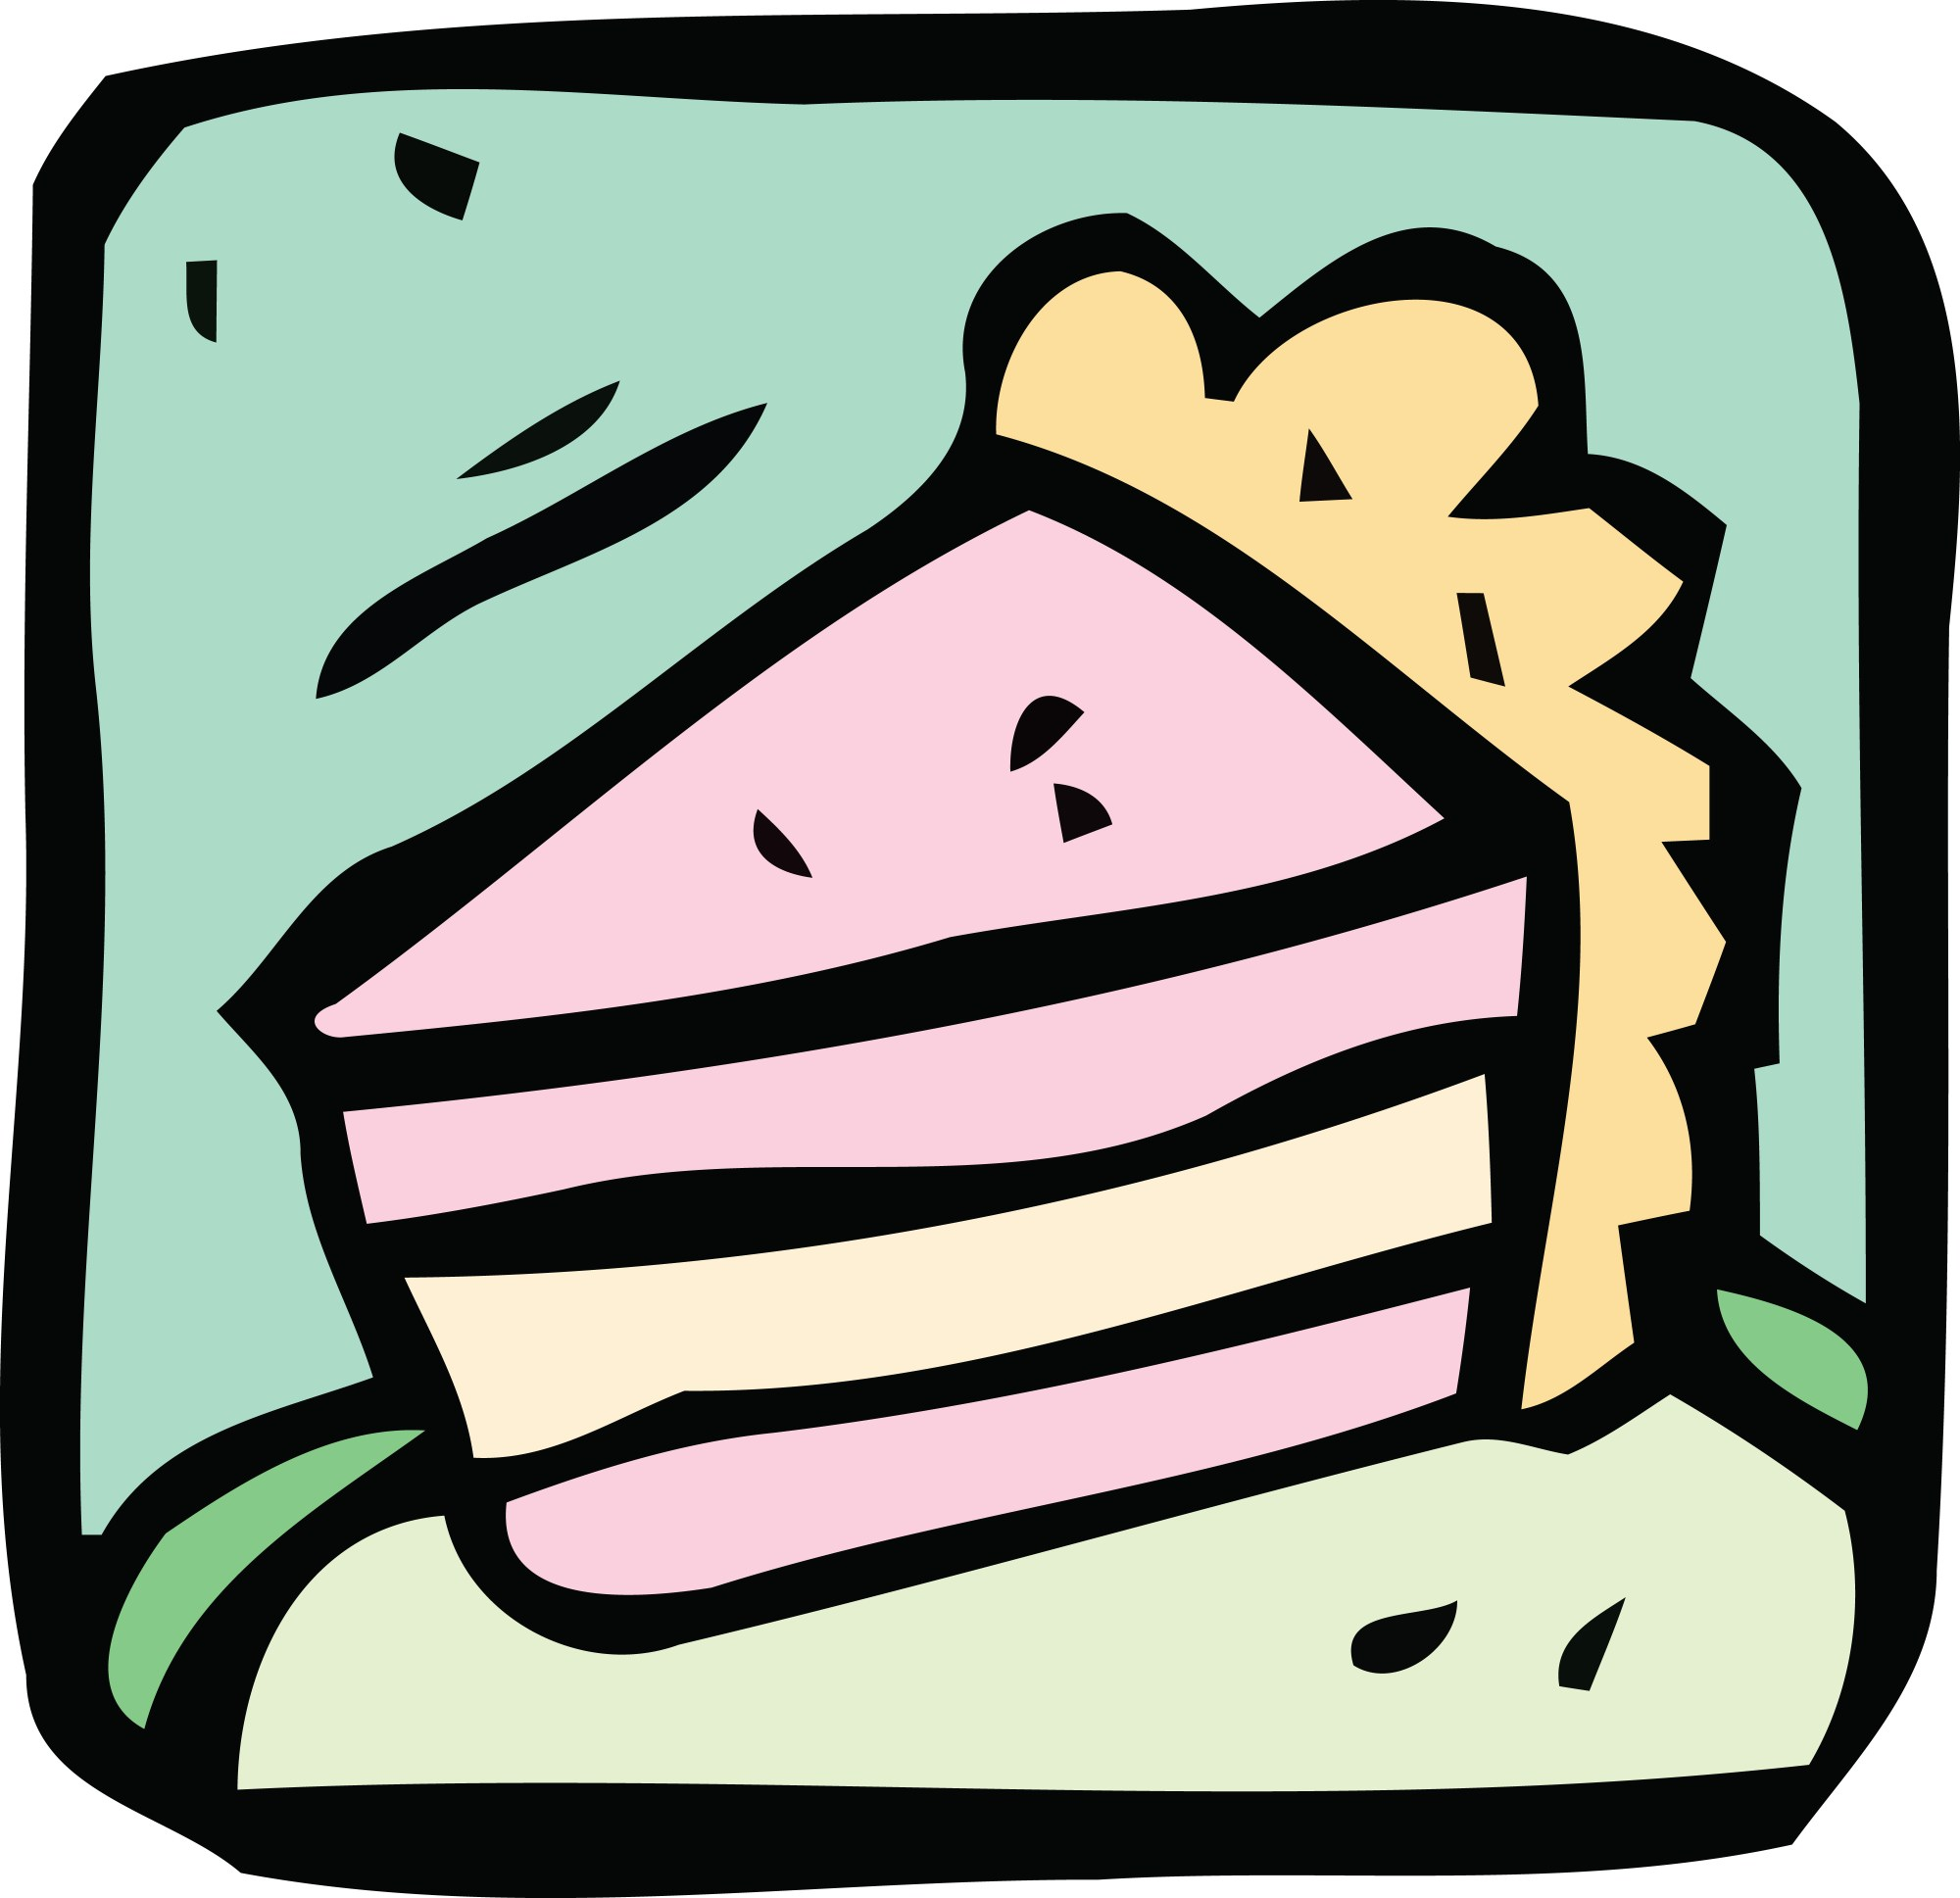 hight resolution of free clipart of a cake slice 00012070